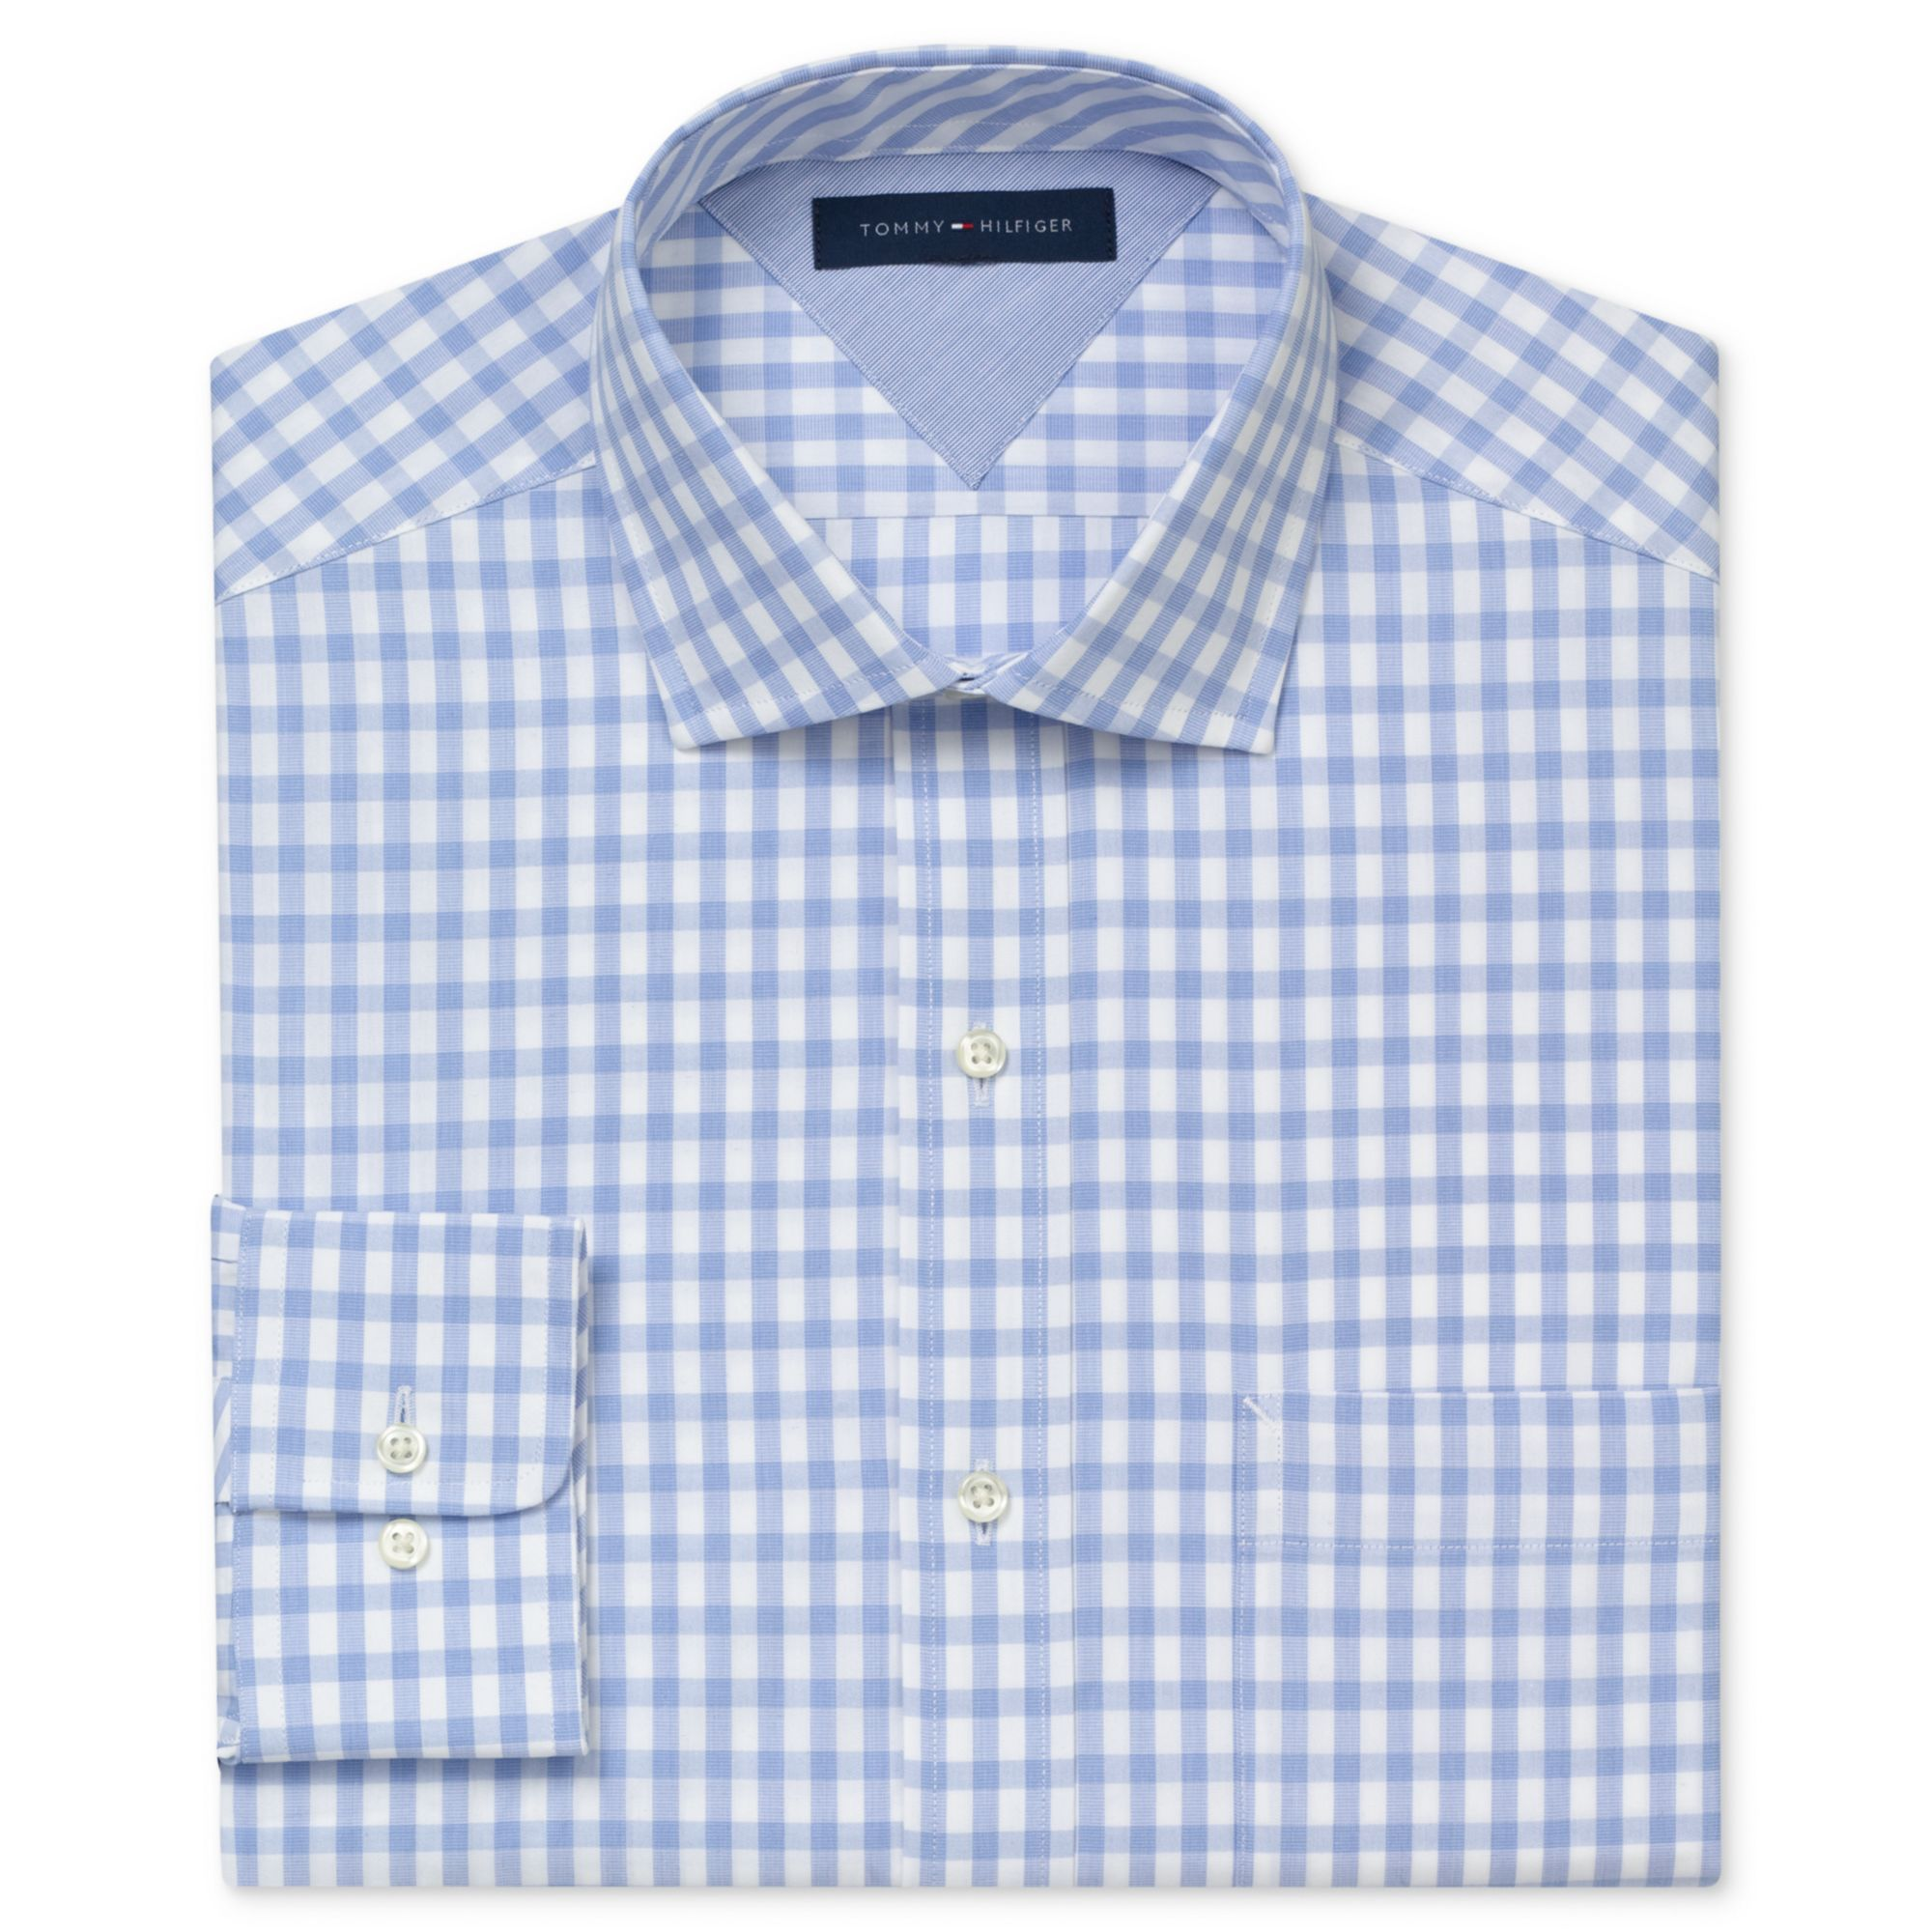 Lyst Tommy Hilfiger Exploded Gingham Long Sleeve Shirt